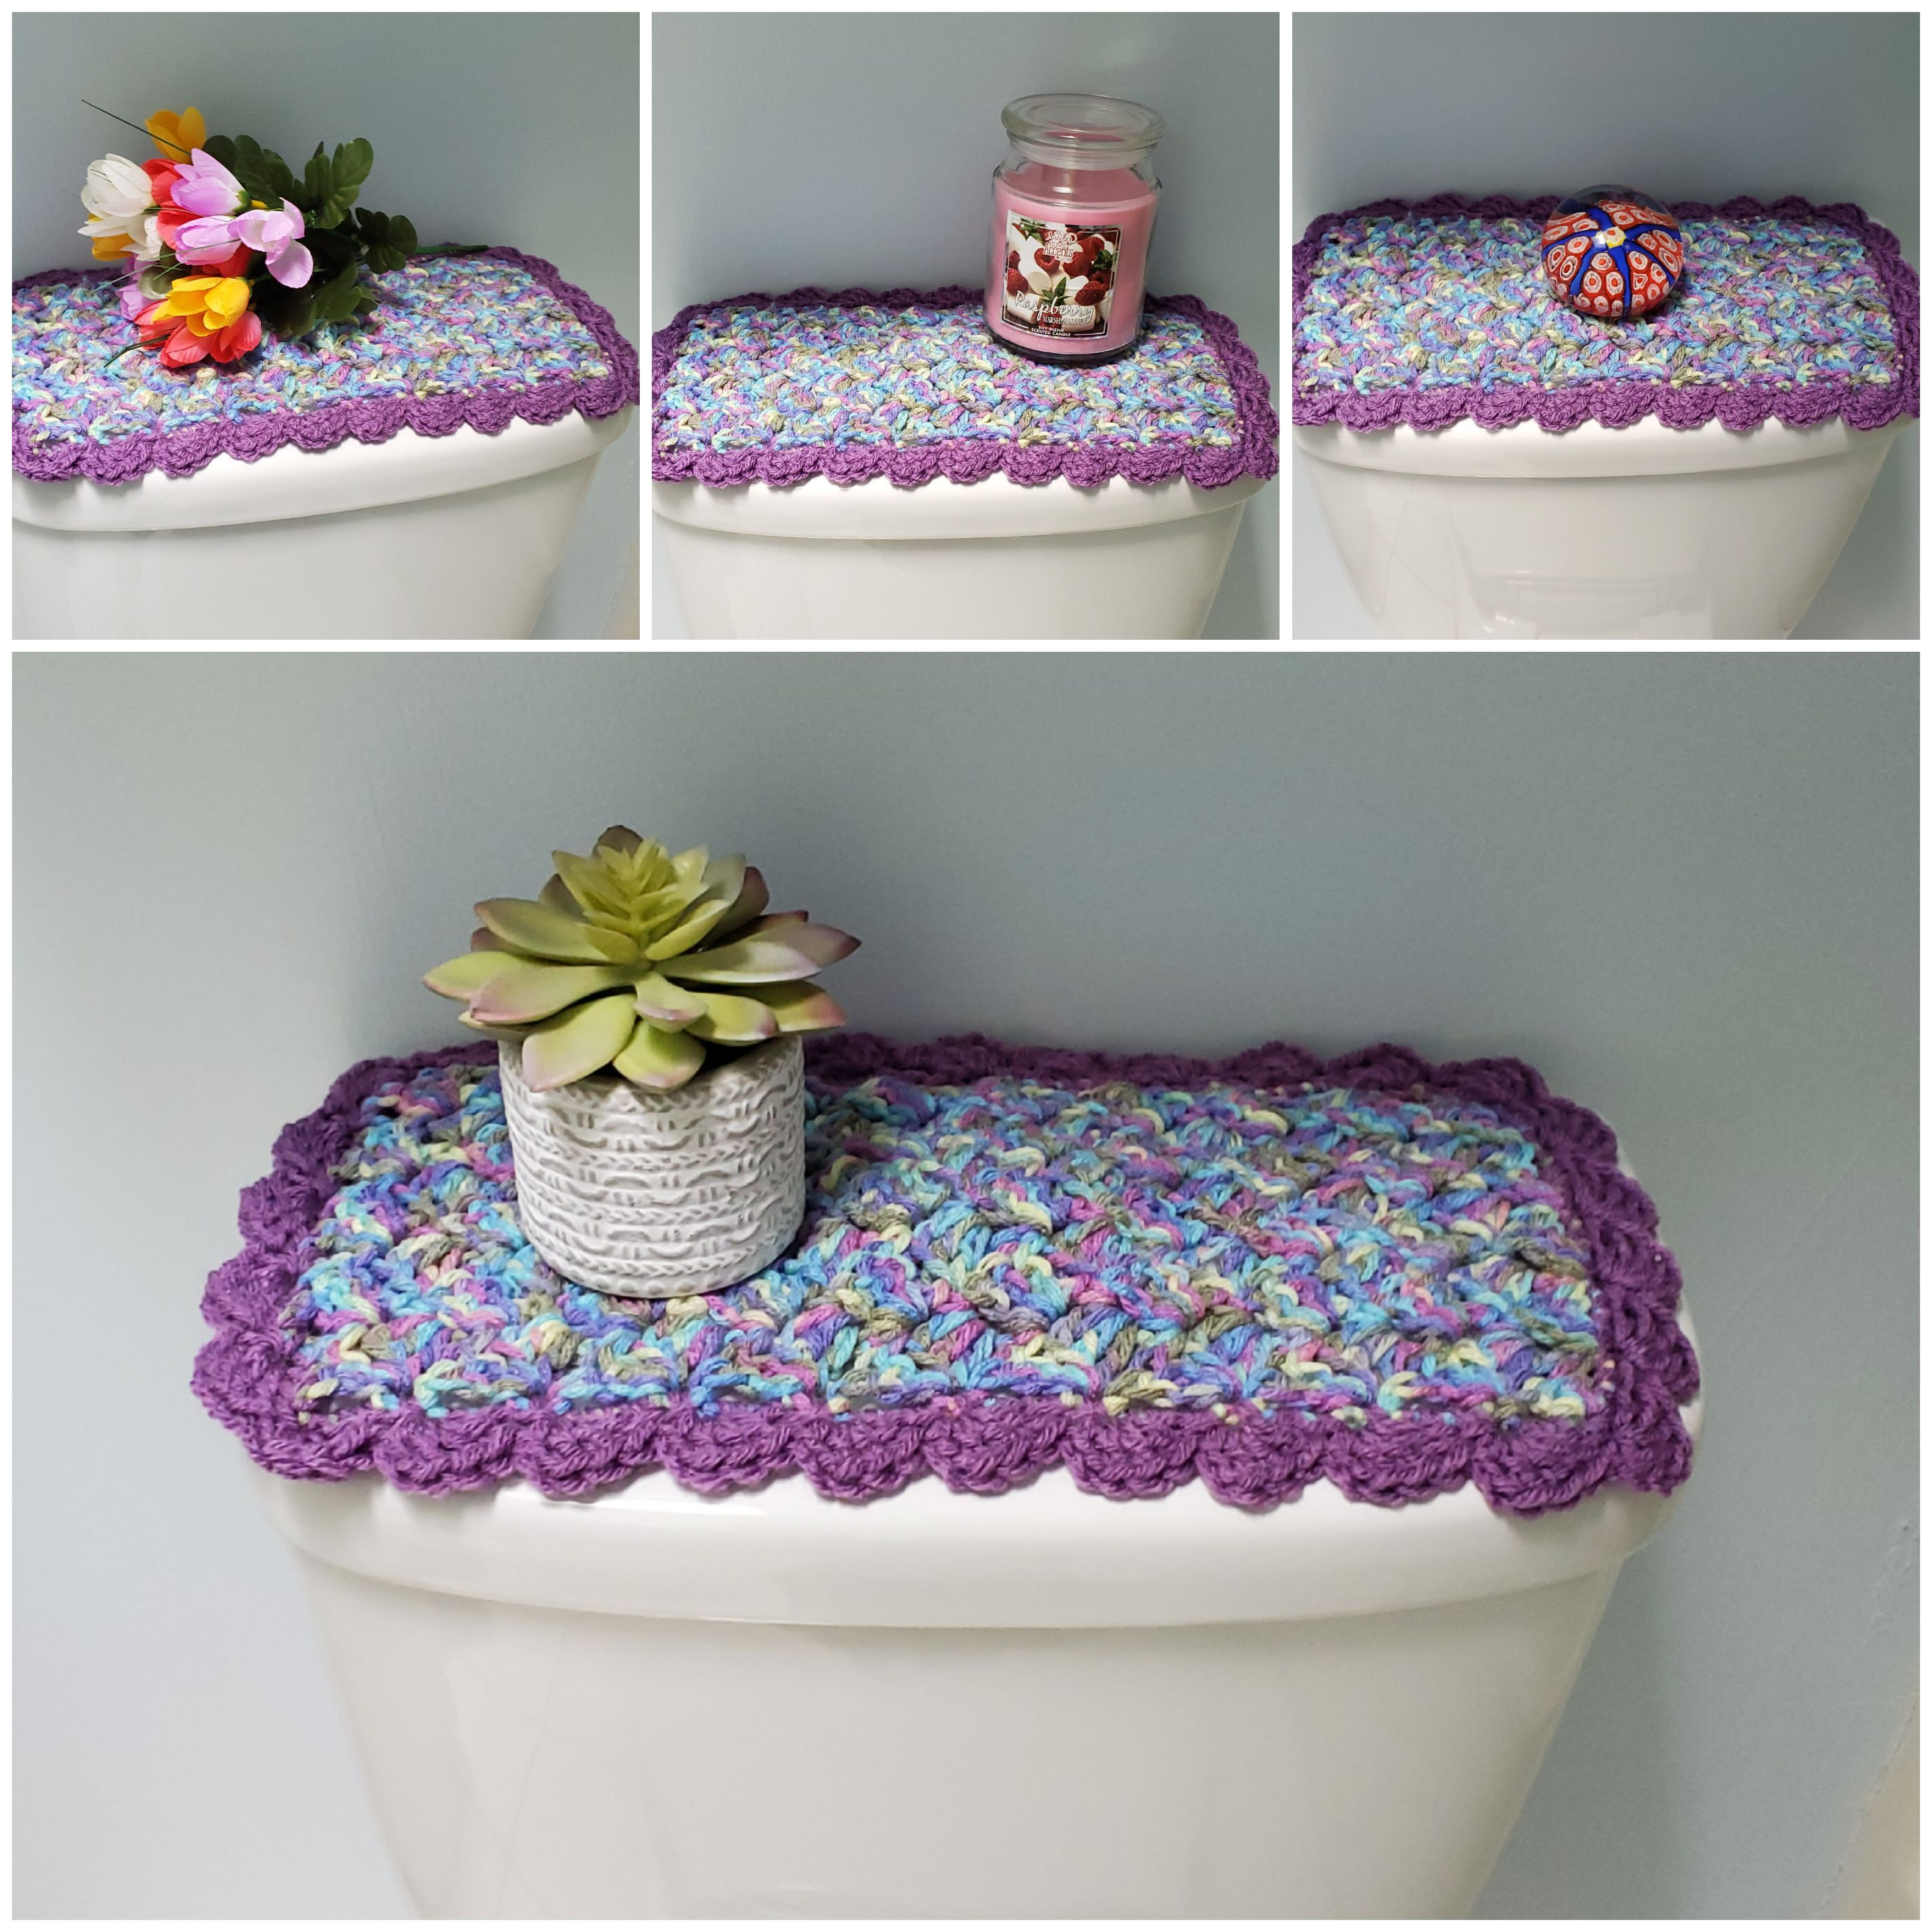 Toilet Tank Topper Crochet Toilet Tank Topper Bathroom Decor Monet Medium Purple Ttt4b With Images Toilet Tank Crafts To Make And Sell Fingertip Towels